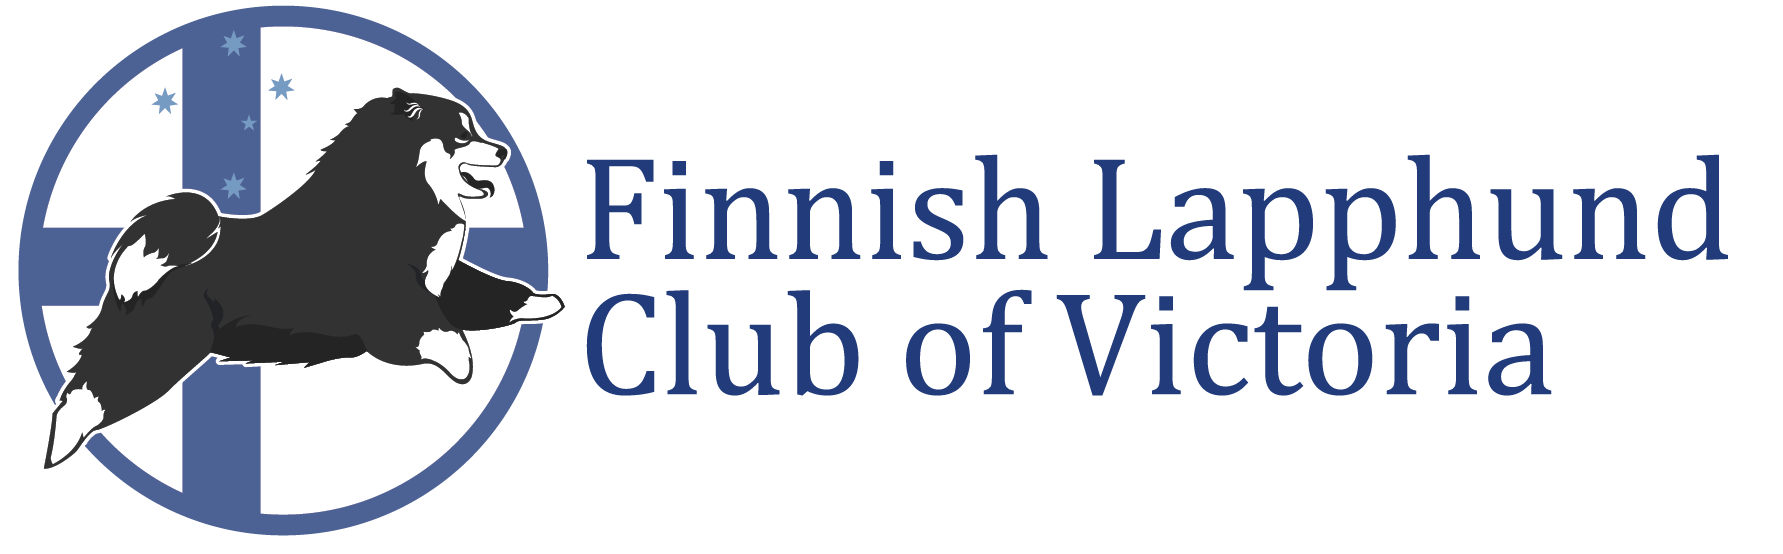 Finnish Lapphund Club of Victoria